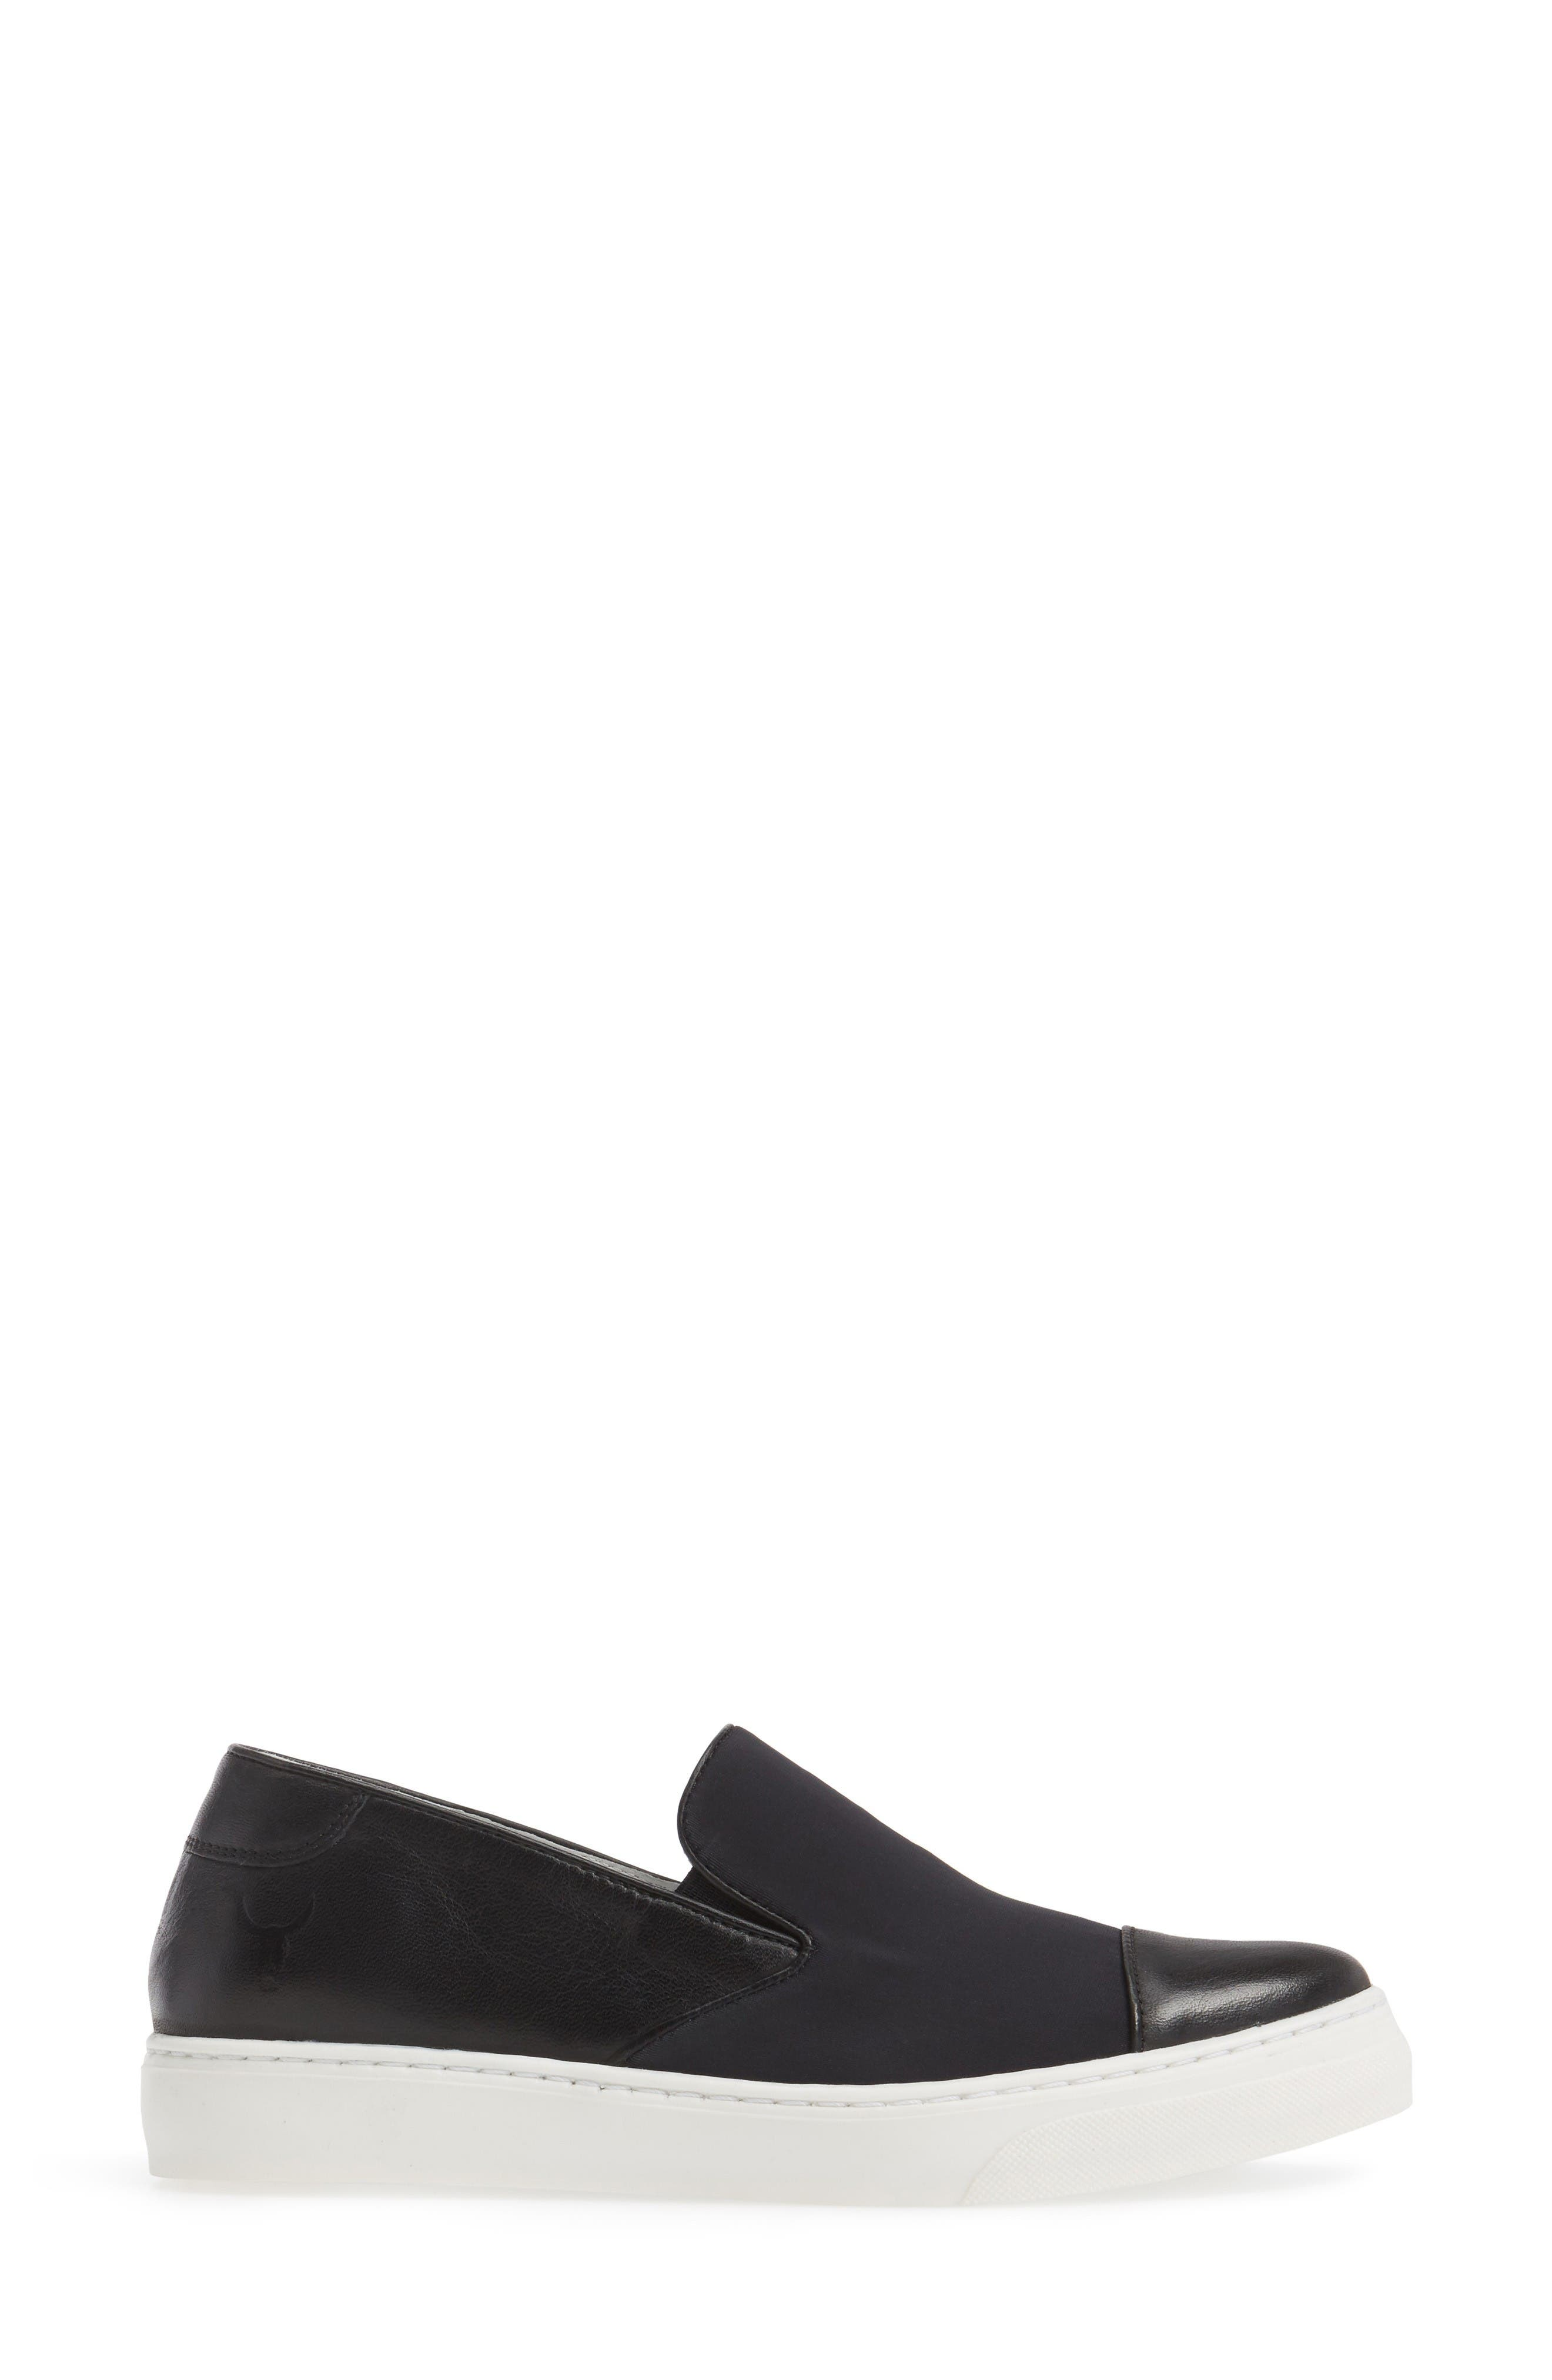 Alternate Image 3  - Rudsak Betsy Slip-On Sneaker (Women)